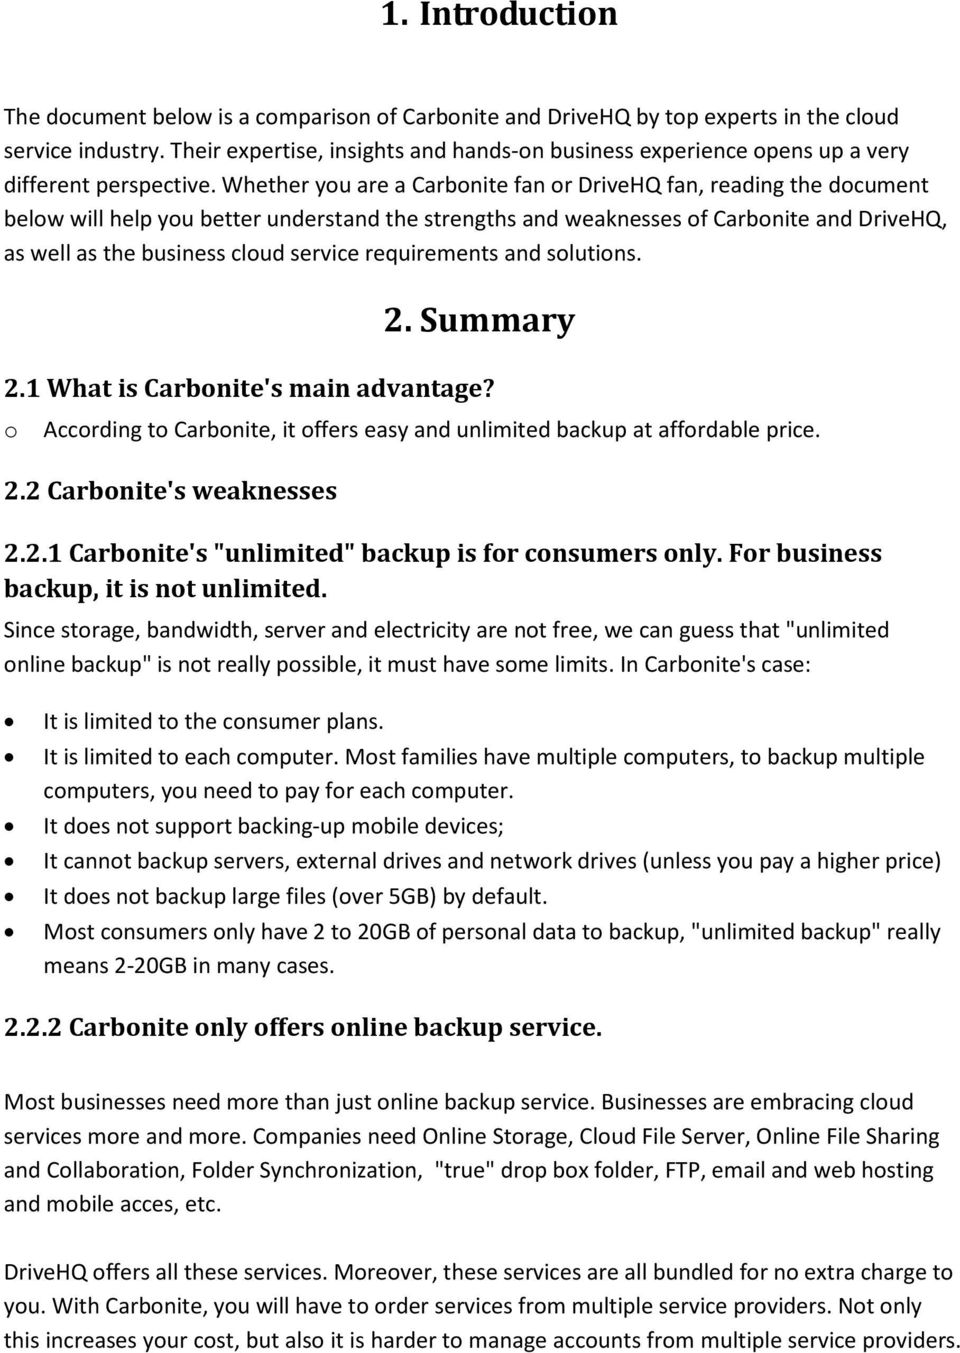 Whether you are a Carbonite fan or DriveHQ fan, reading the document below will help you better understand the strengths and weaknesses of Carbonite and DriveHQ, as well as the business cloud service